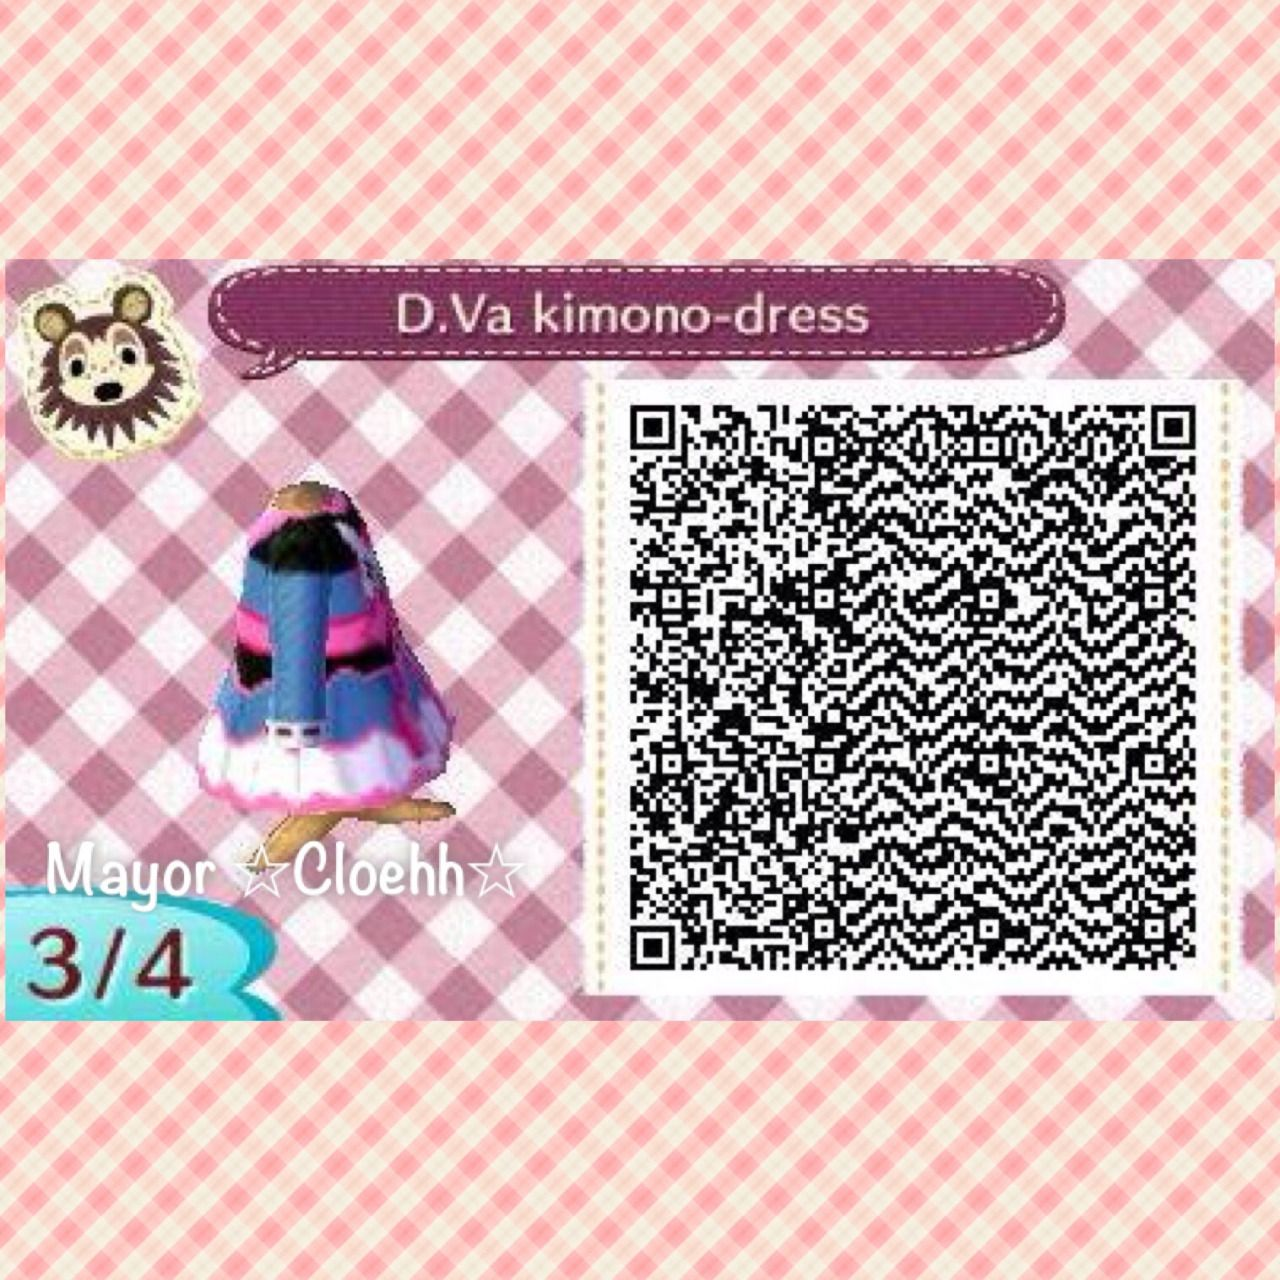 I made this today! D.Va ( Overwatch by Blizzard ) In New Leaf! The kimono dress design is based from Darling Army, who makes wonderful cosplay kimonos! Here's the QR codes, enjoy! I will make more...